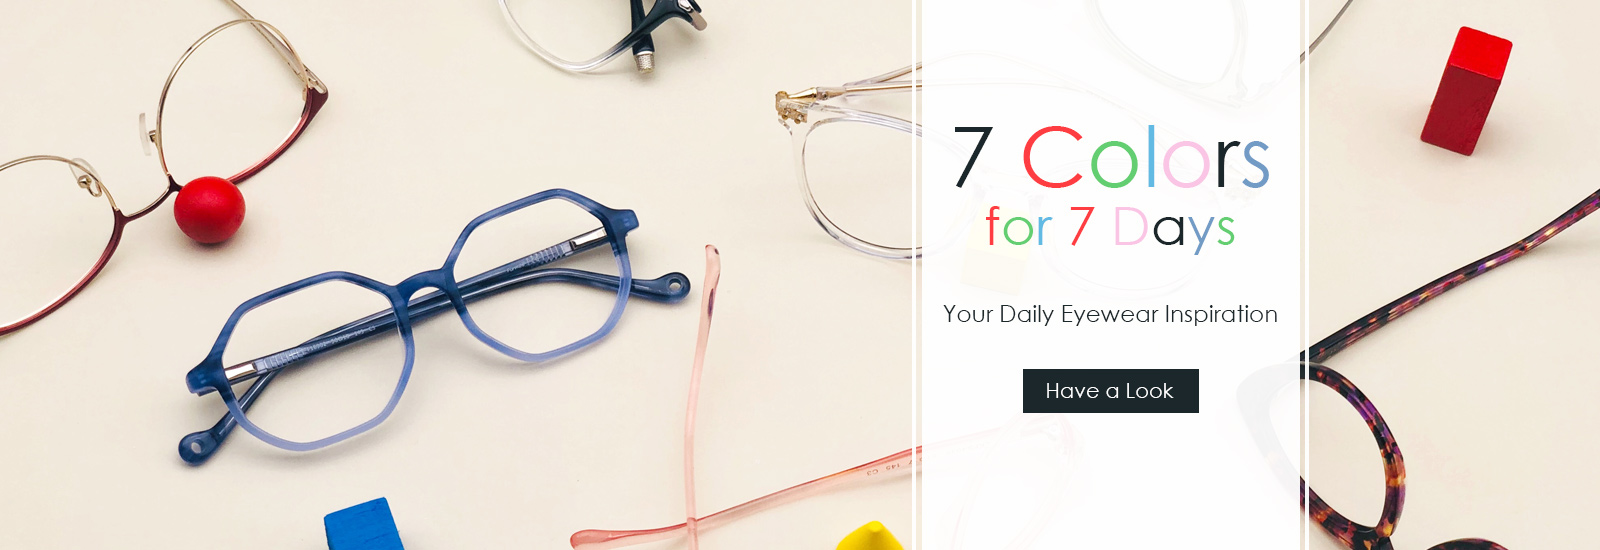 8473a6f5f7 Firmoo.com - Your Preferred Online Eyewear Store - Glasses ...